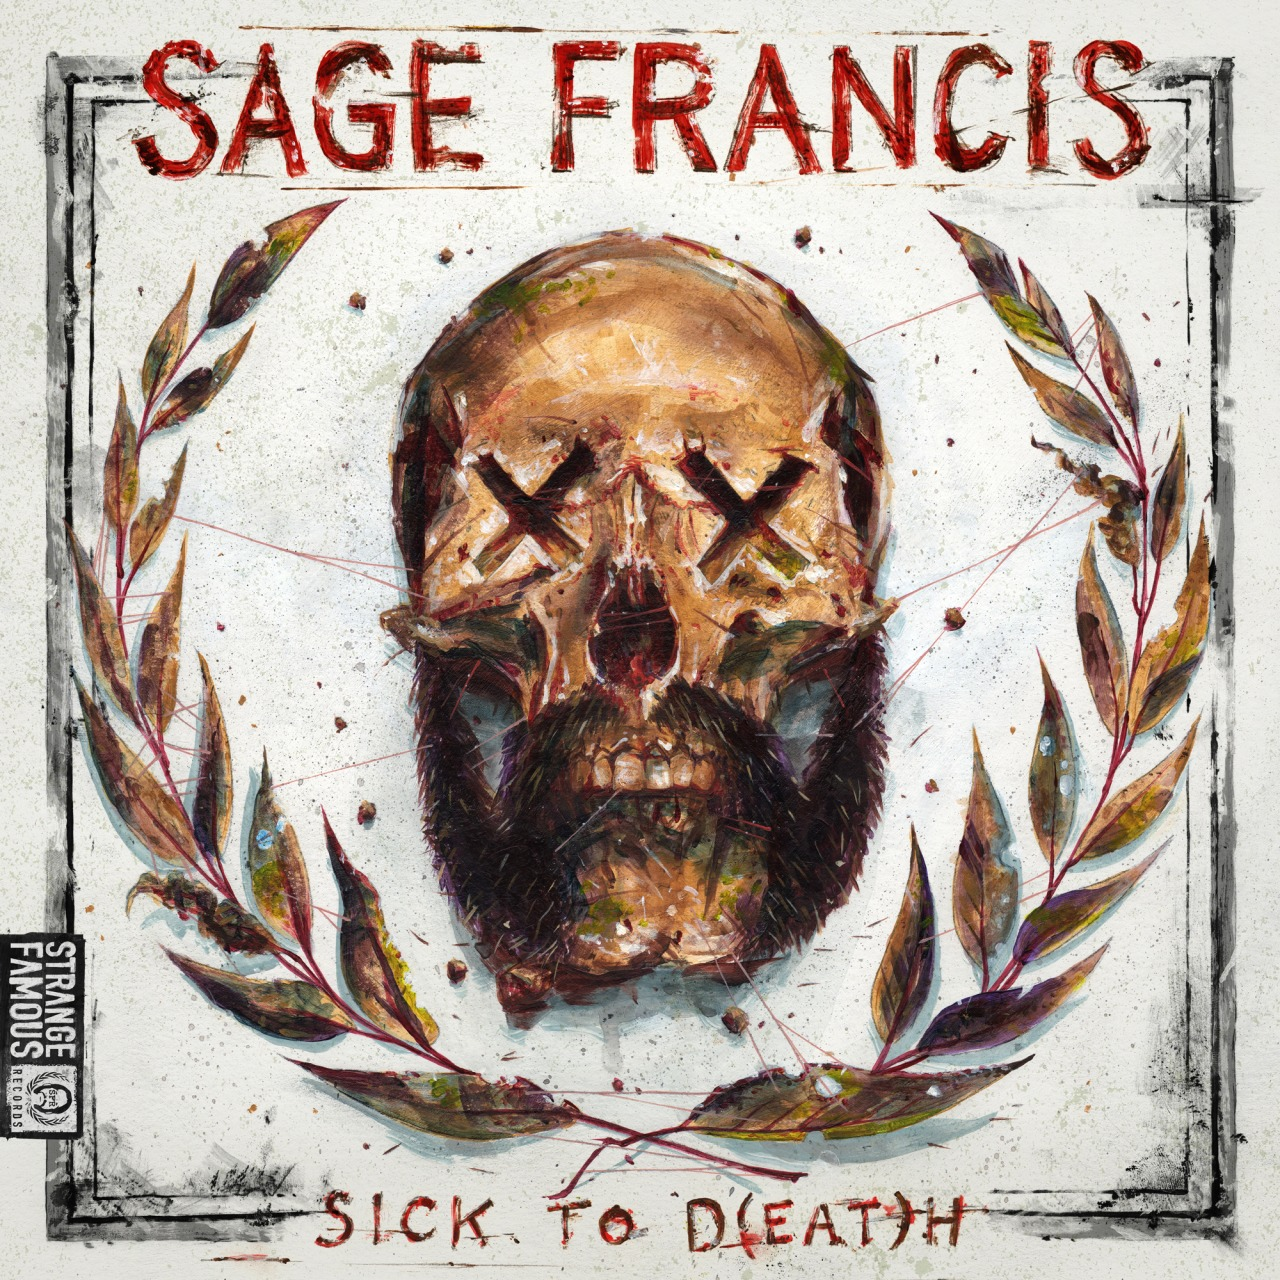 sagefrancis :     New mixtape! SICK TO D(EAT)H drops on Dec 12th, 2013. CD, MP3, cassette tape package deals available now along with a free download at  www.StrangeFamousRecords.com